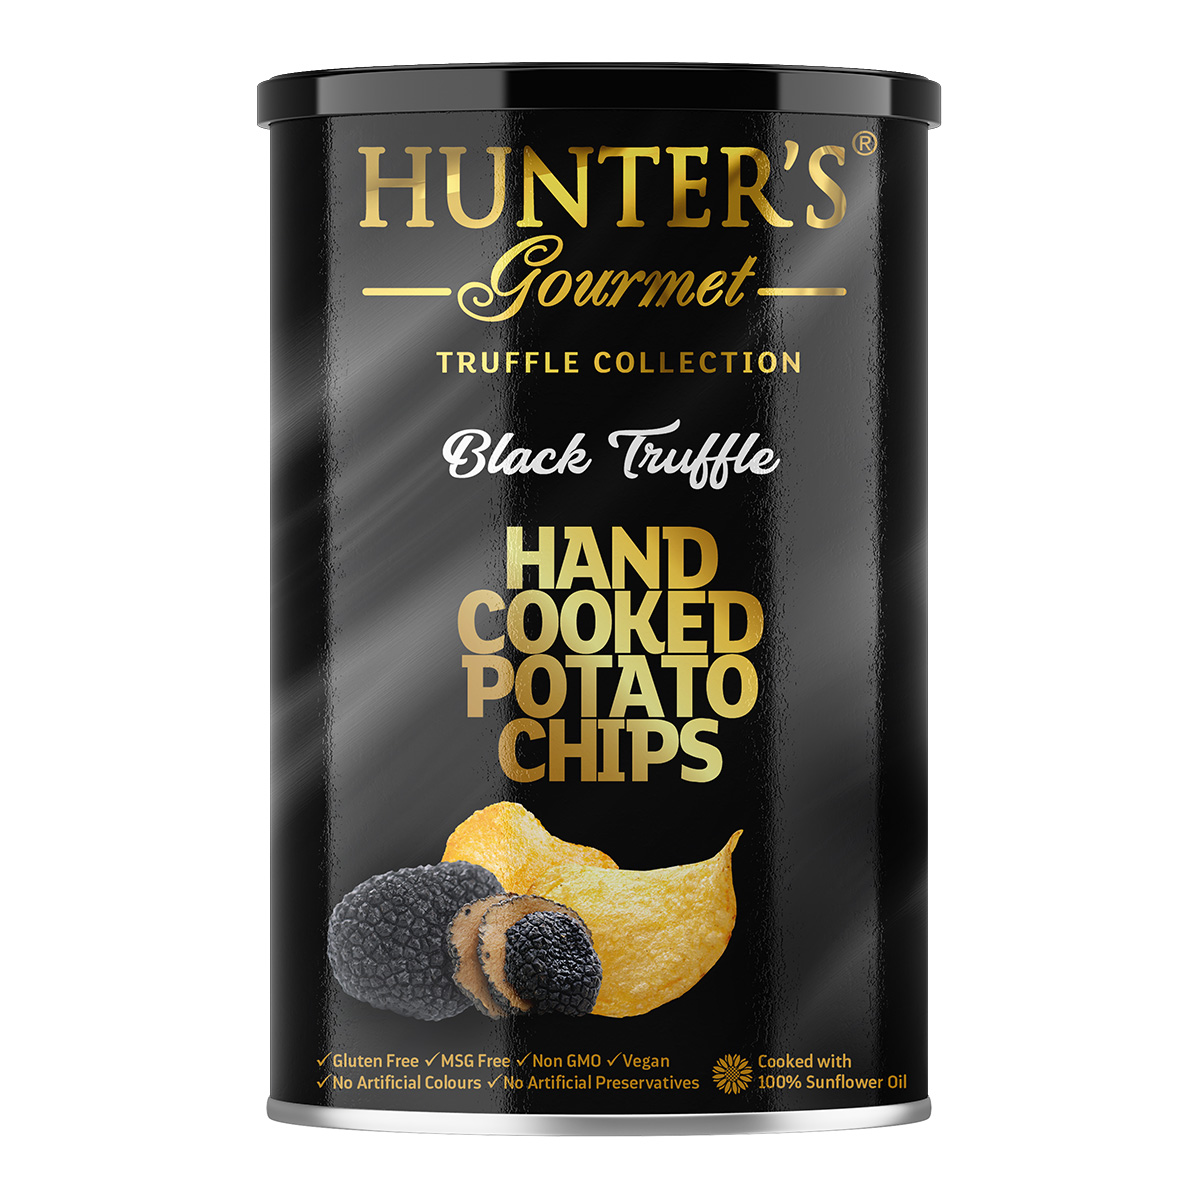 Hunter's Gourmet Hand Cooked Potato Chips – Black Truffle – Truffle Collection (40gm)